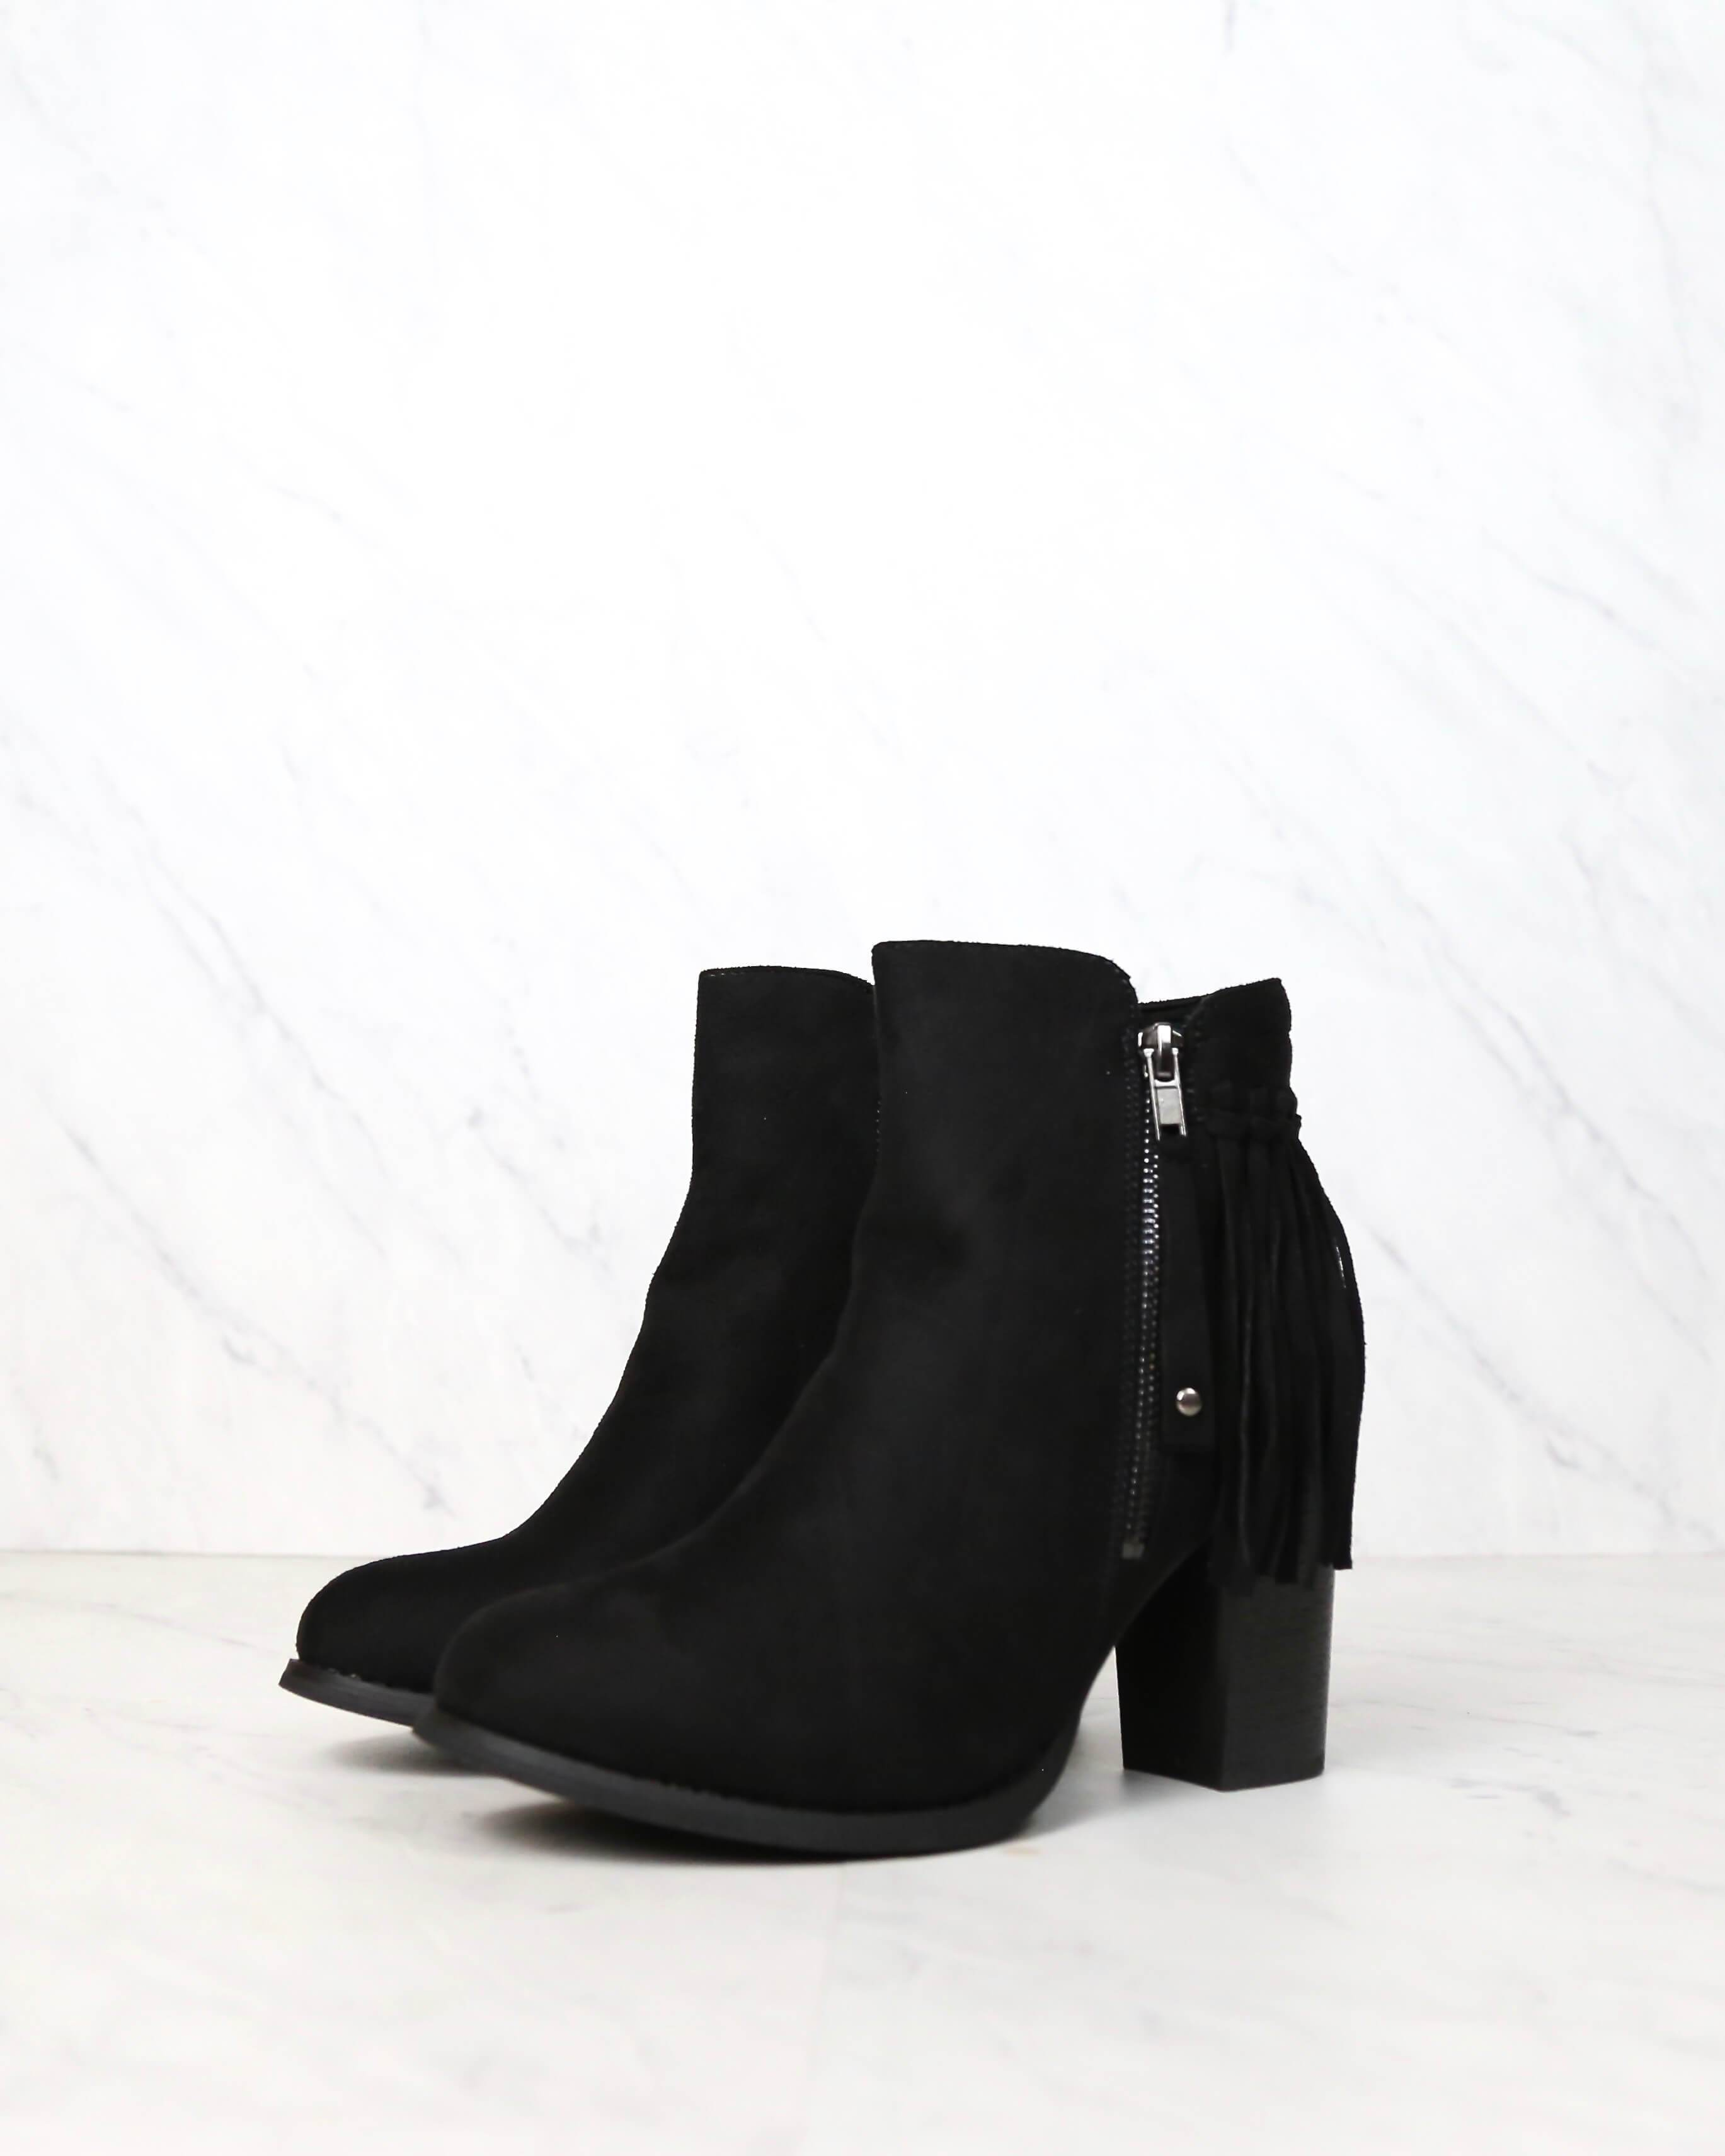 Image of City Chic Fringe Vegan Suede Ankle Boots in Black